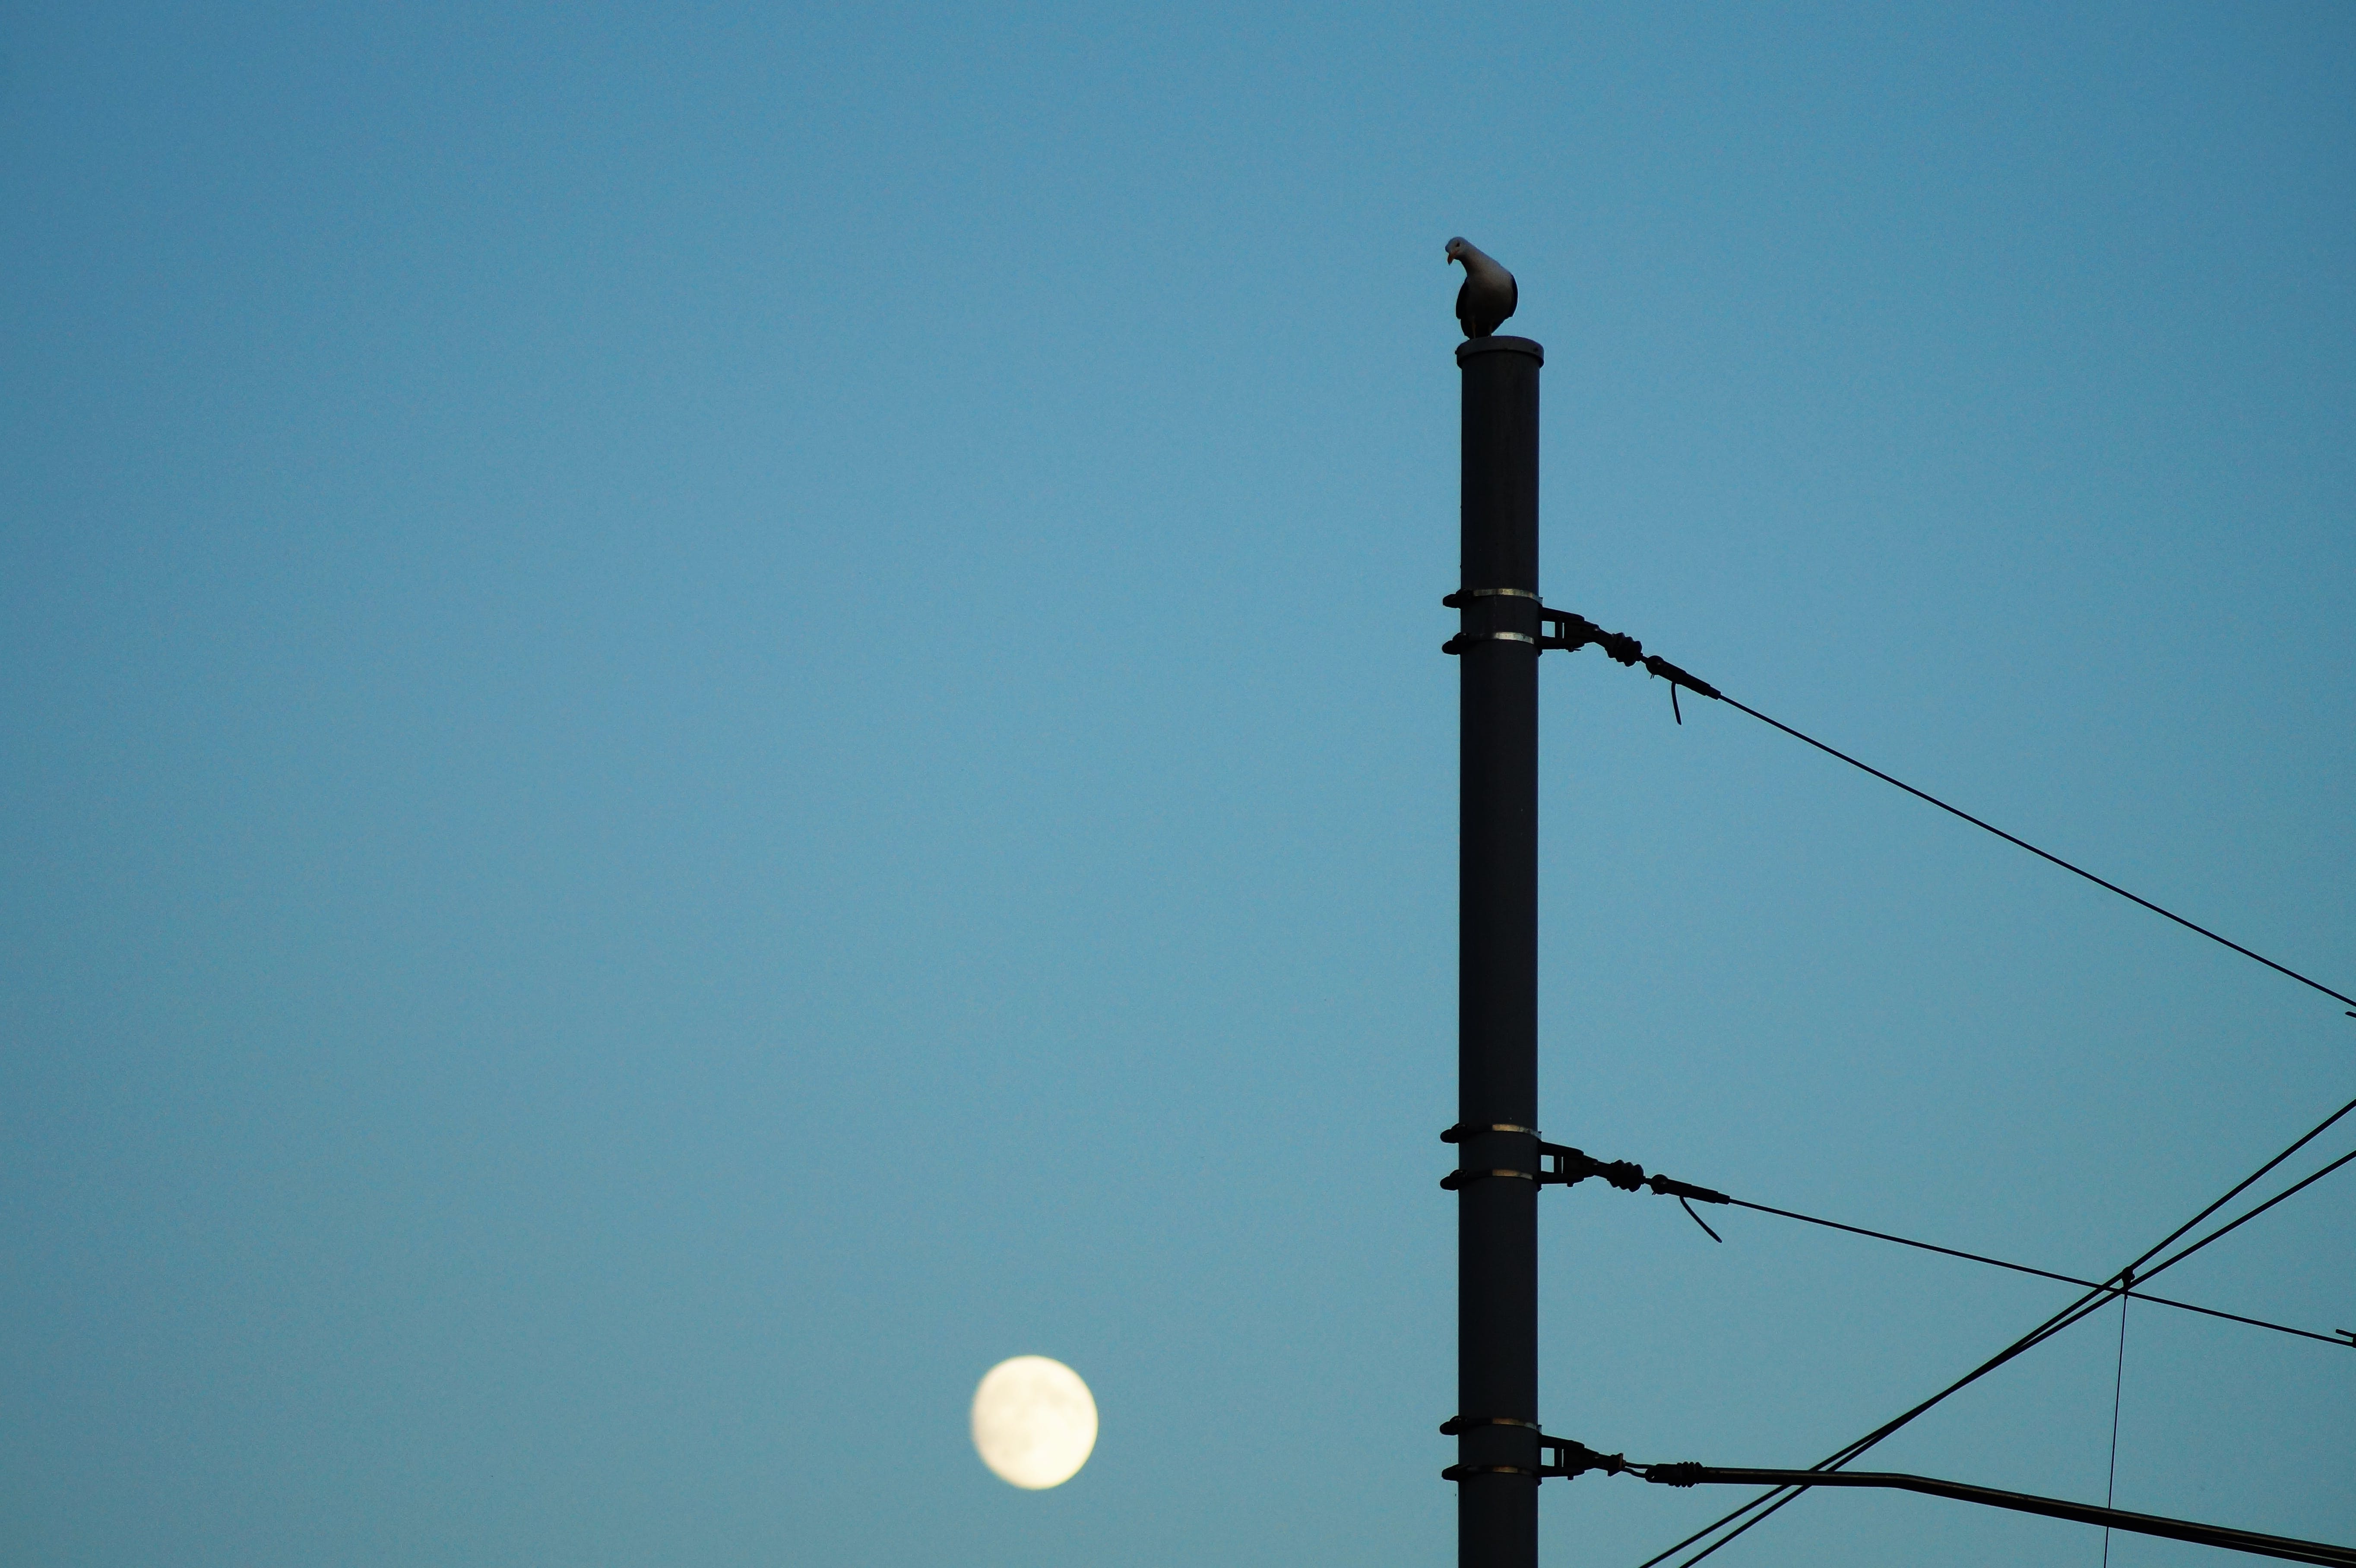 Silhouette of Bird Perching on Electric Post